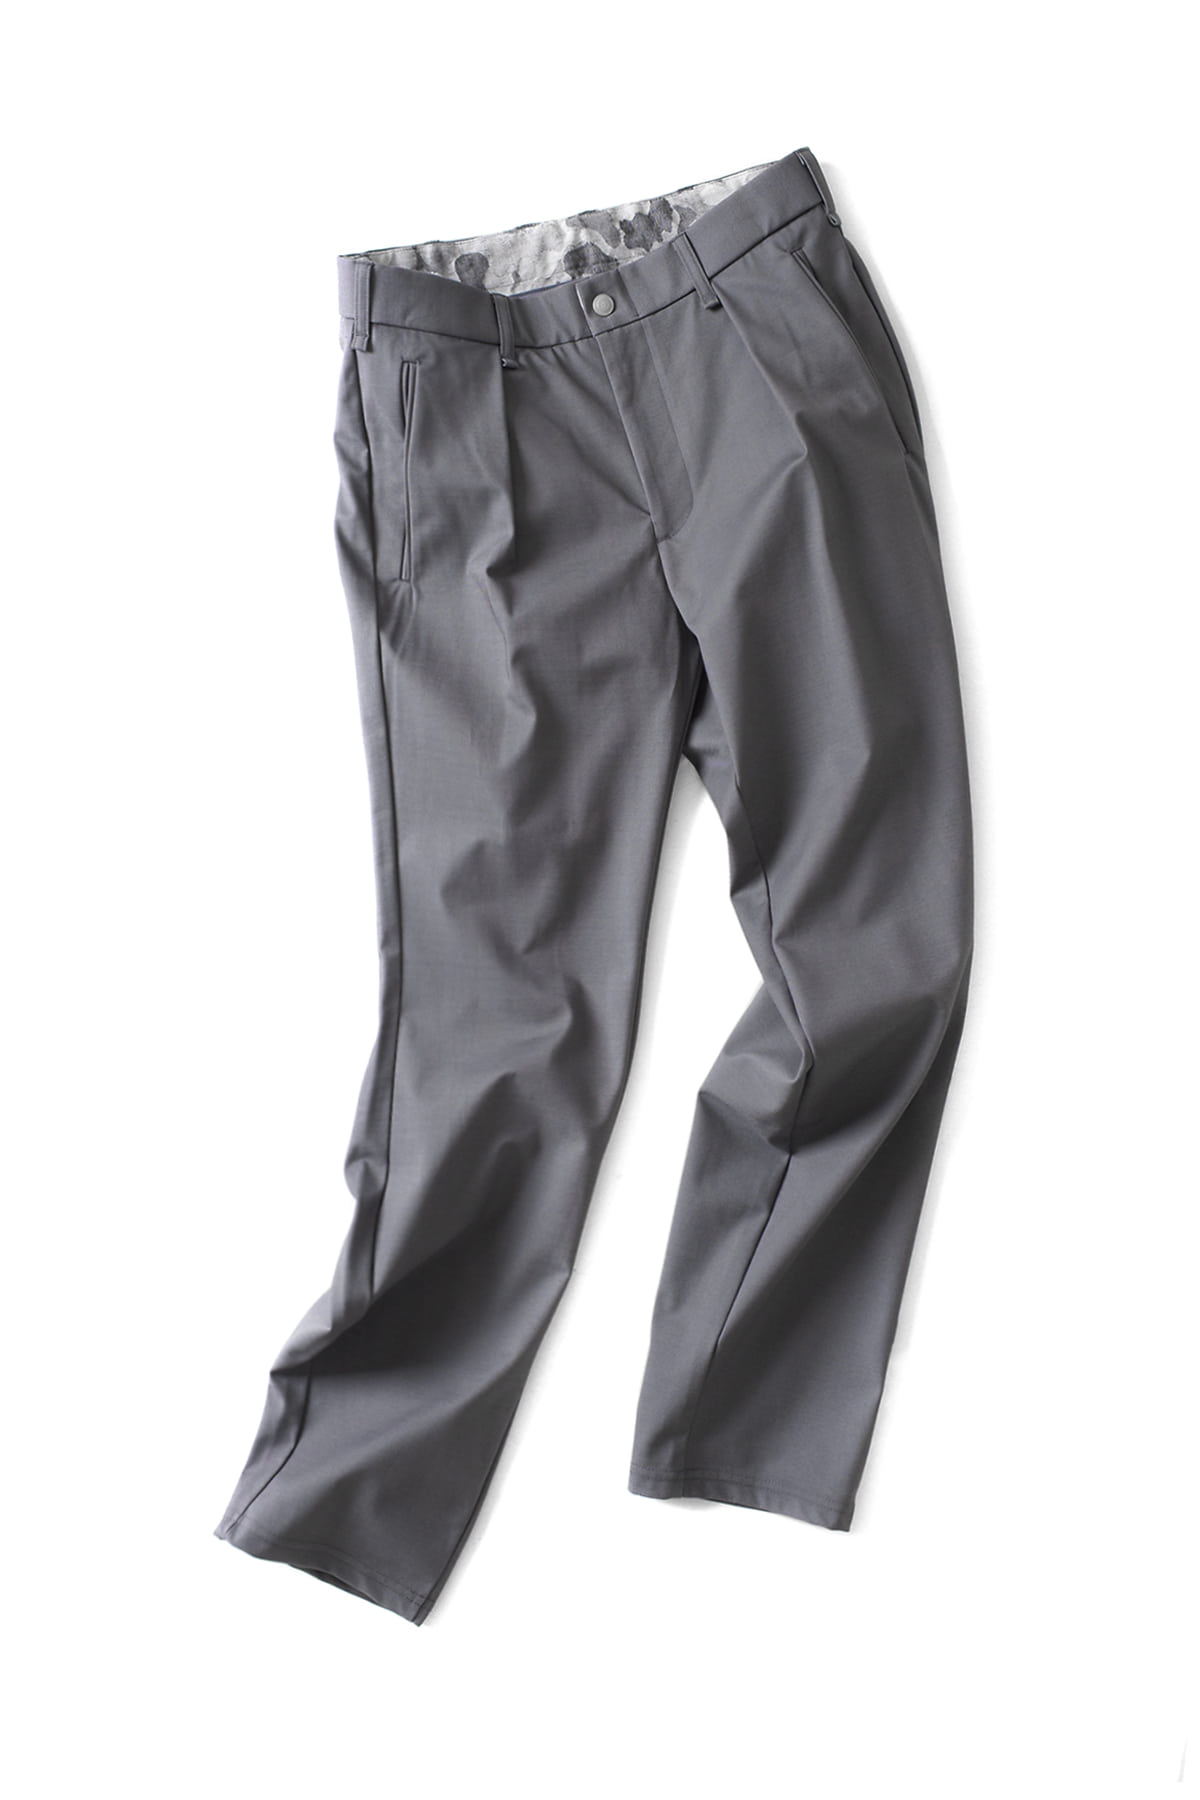 Curly : Bright Trouser (Grey)